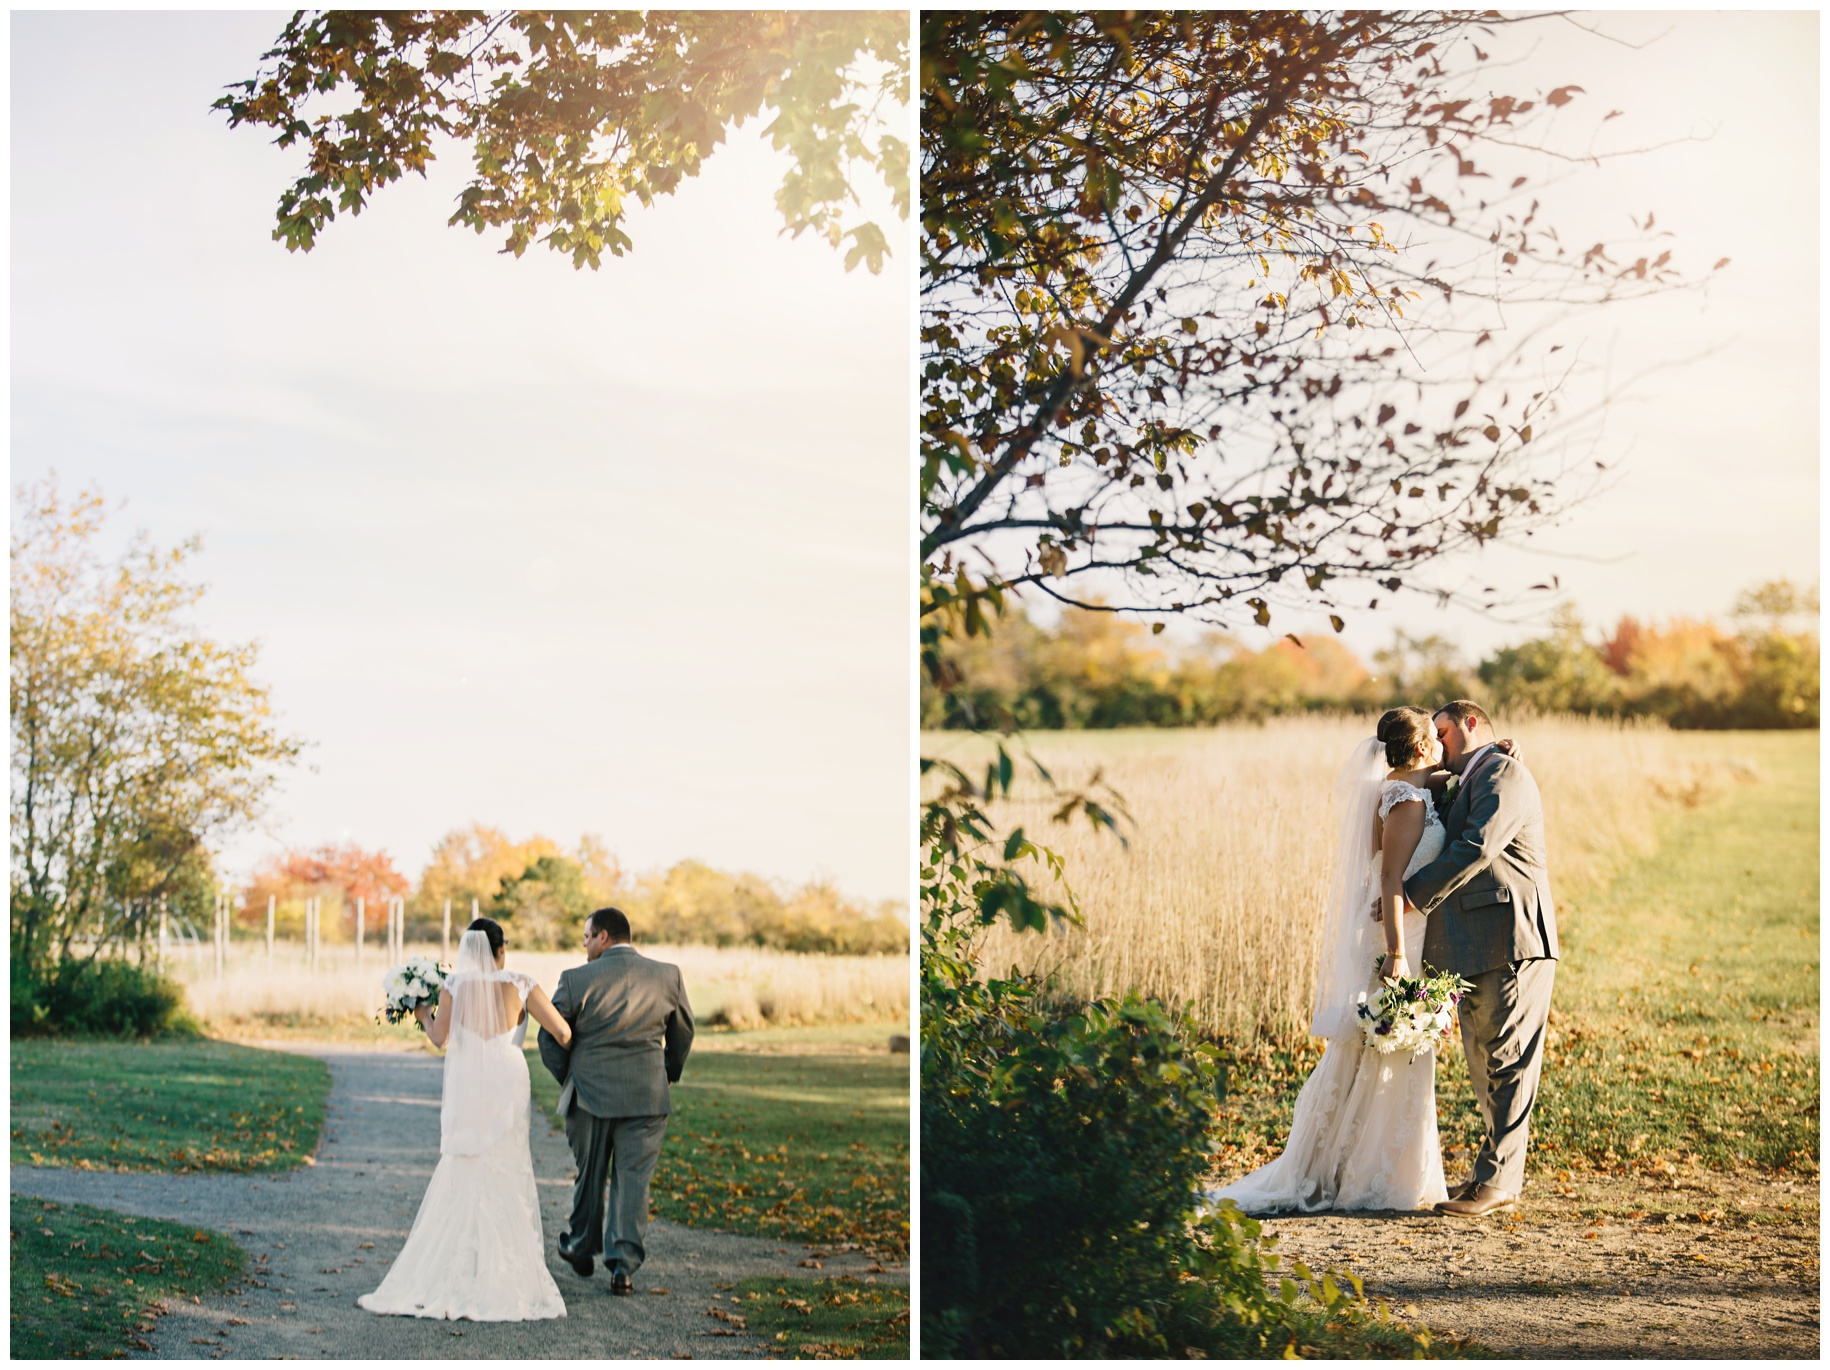 maineweddingphotographer_laudholmfarm_wells_barn_wedding-012